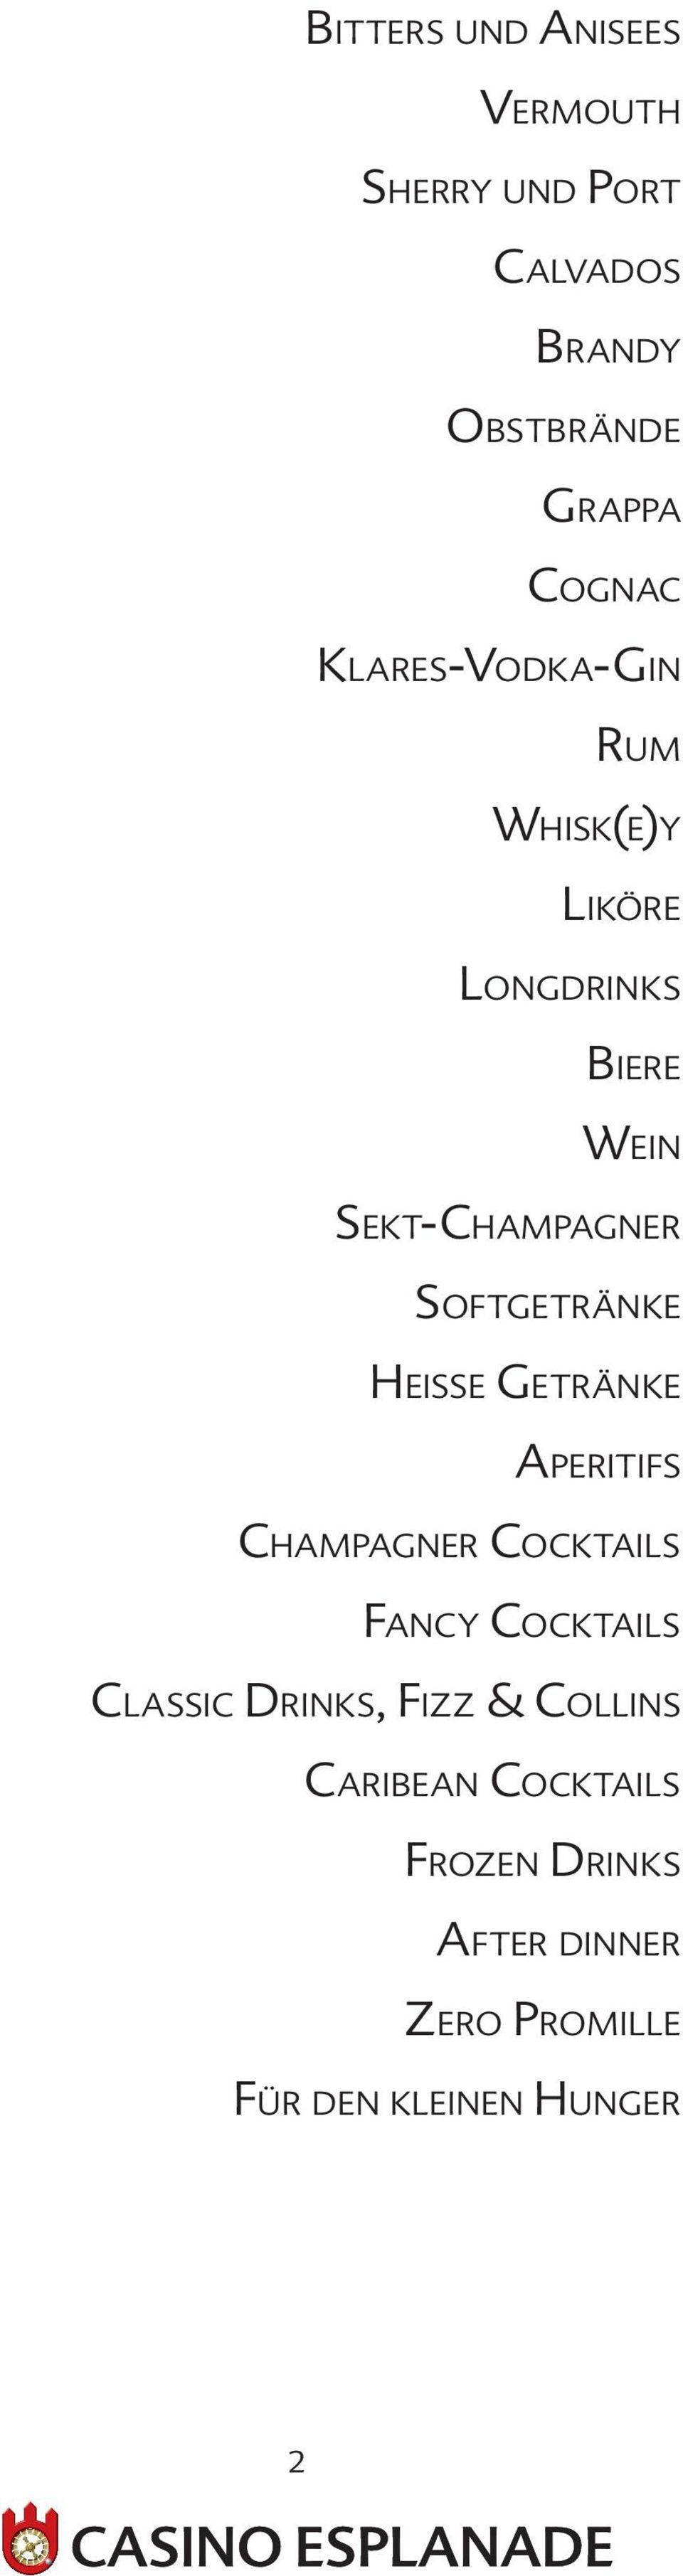 Heisse Getränke Aperitifs Champagner Cocktails Fancy Cocktails Classic Drinks, Fizz &